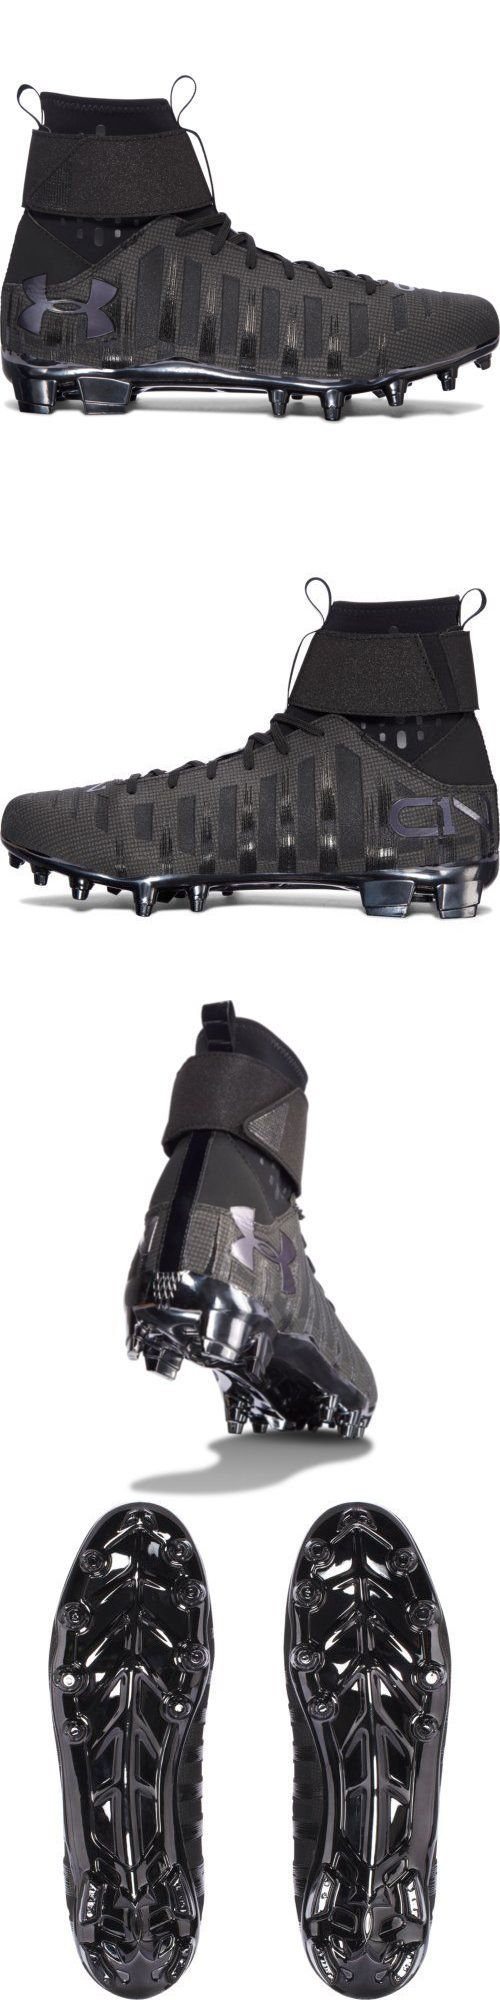 Men 159116: Under Armour Men S Ua 2017 C1n Mc Cam Newton Football Cleats - Free Shipping -> BUY IT NOW ONLY: $99.99 on eBay!